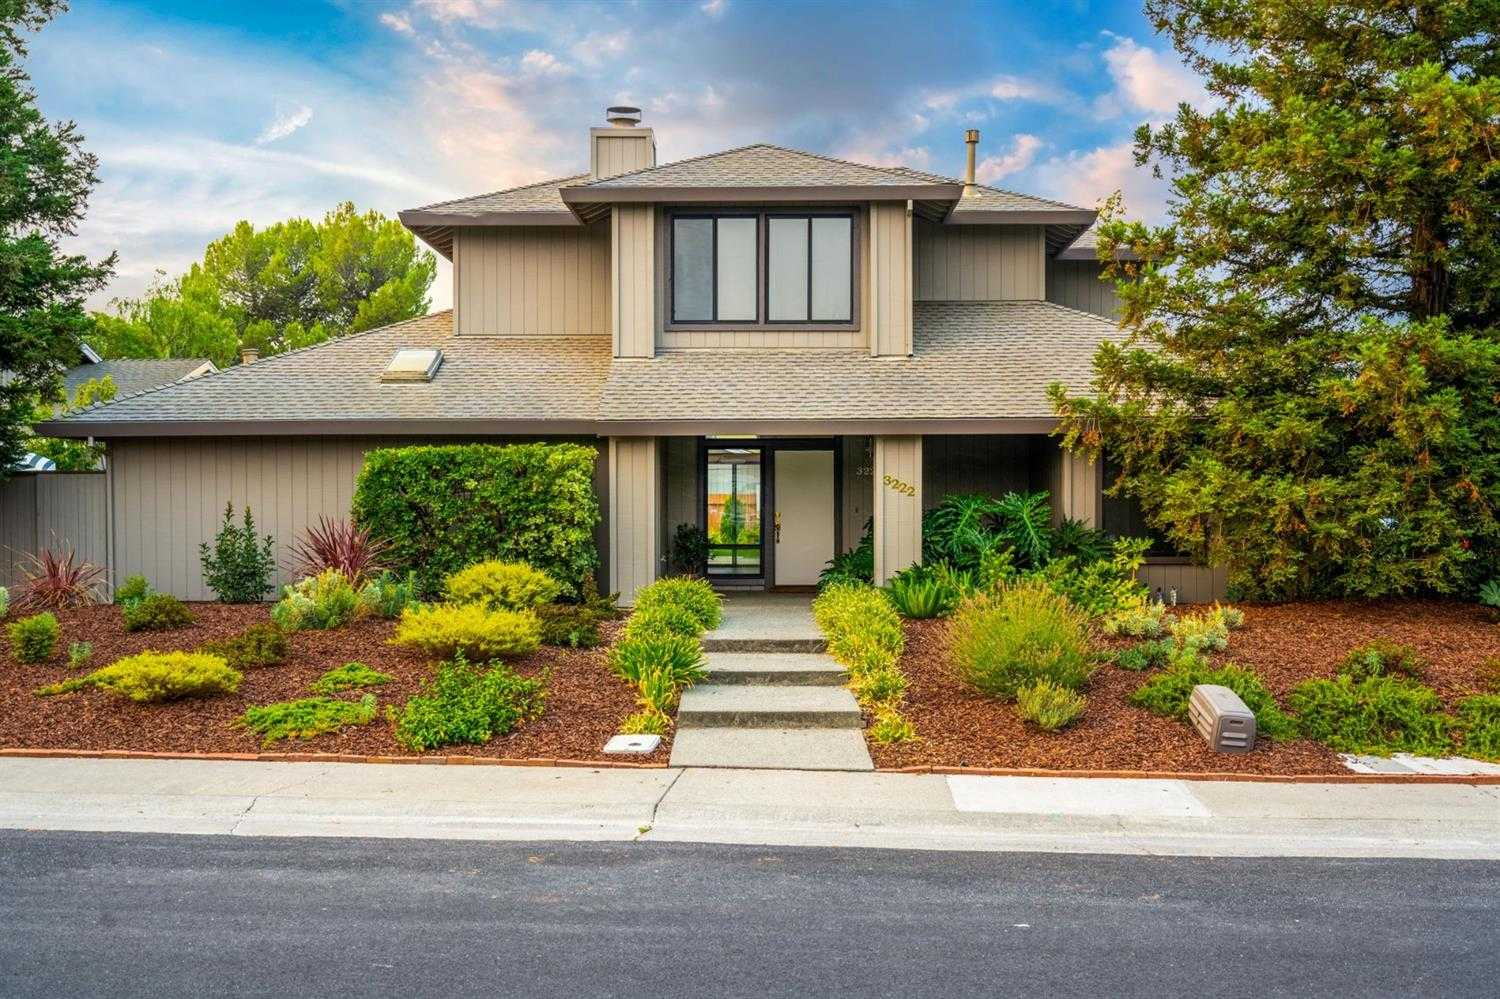 $987,000 - 5Br/3Ba -  for Sale in Davis